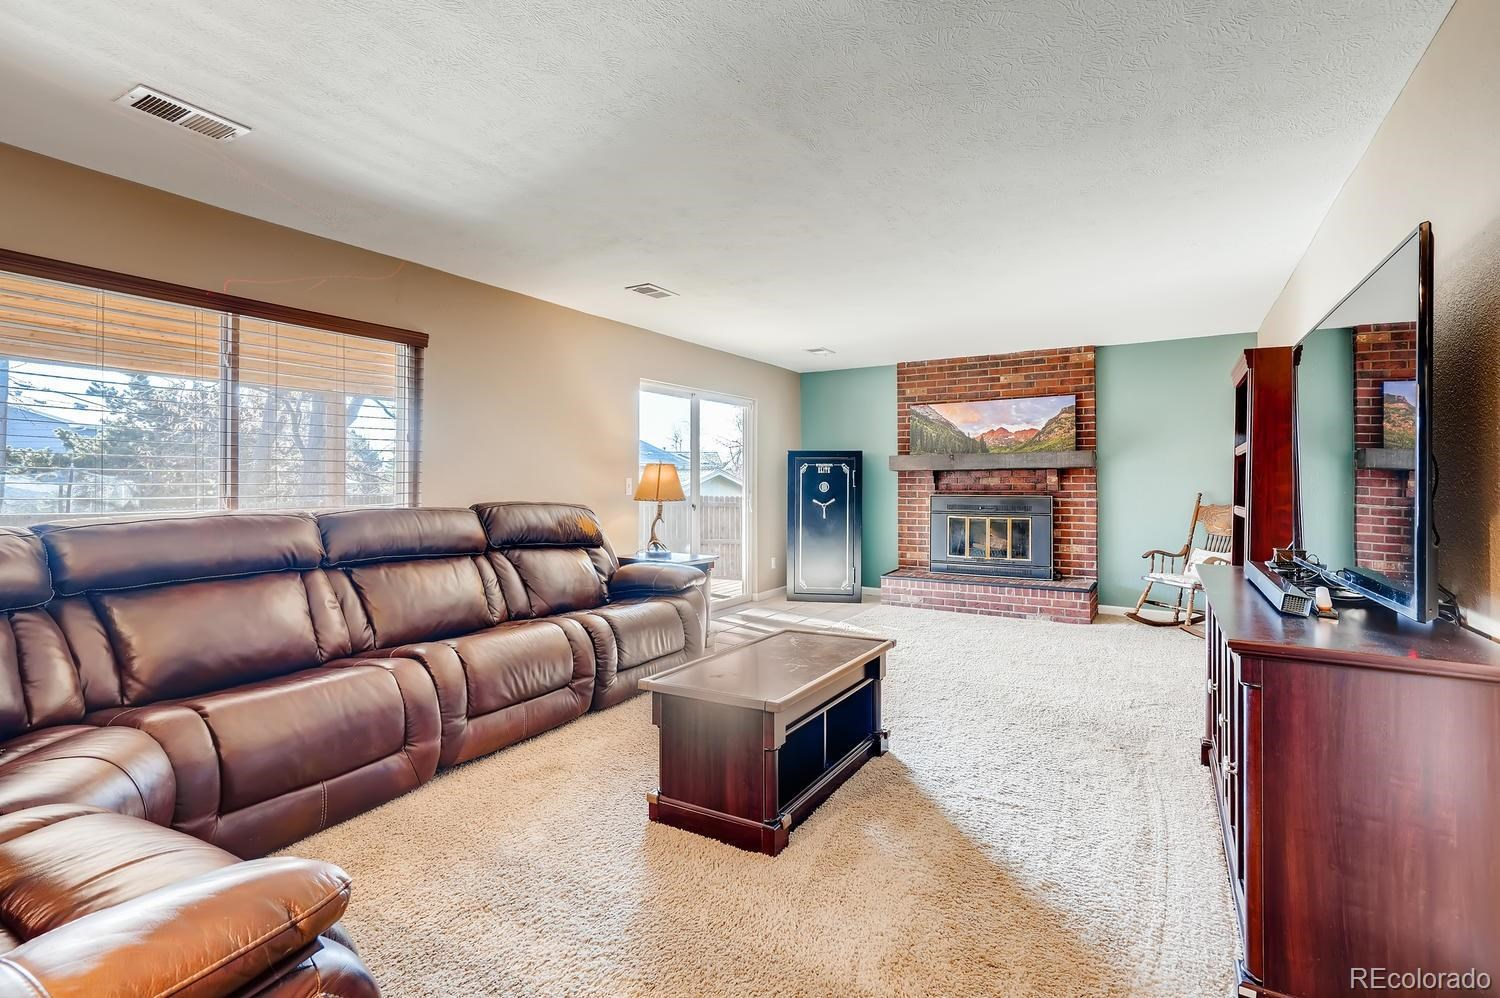 MLS# 8480812 - 11 - 12630 W 67th Place, Arvada, CO 80004